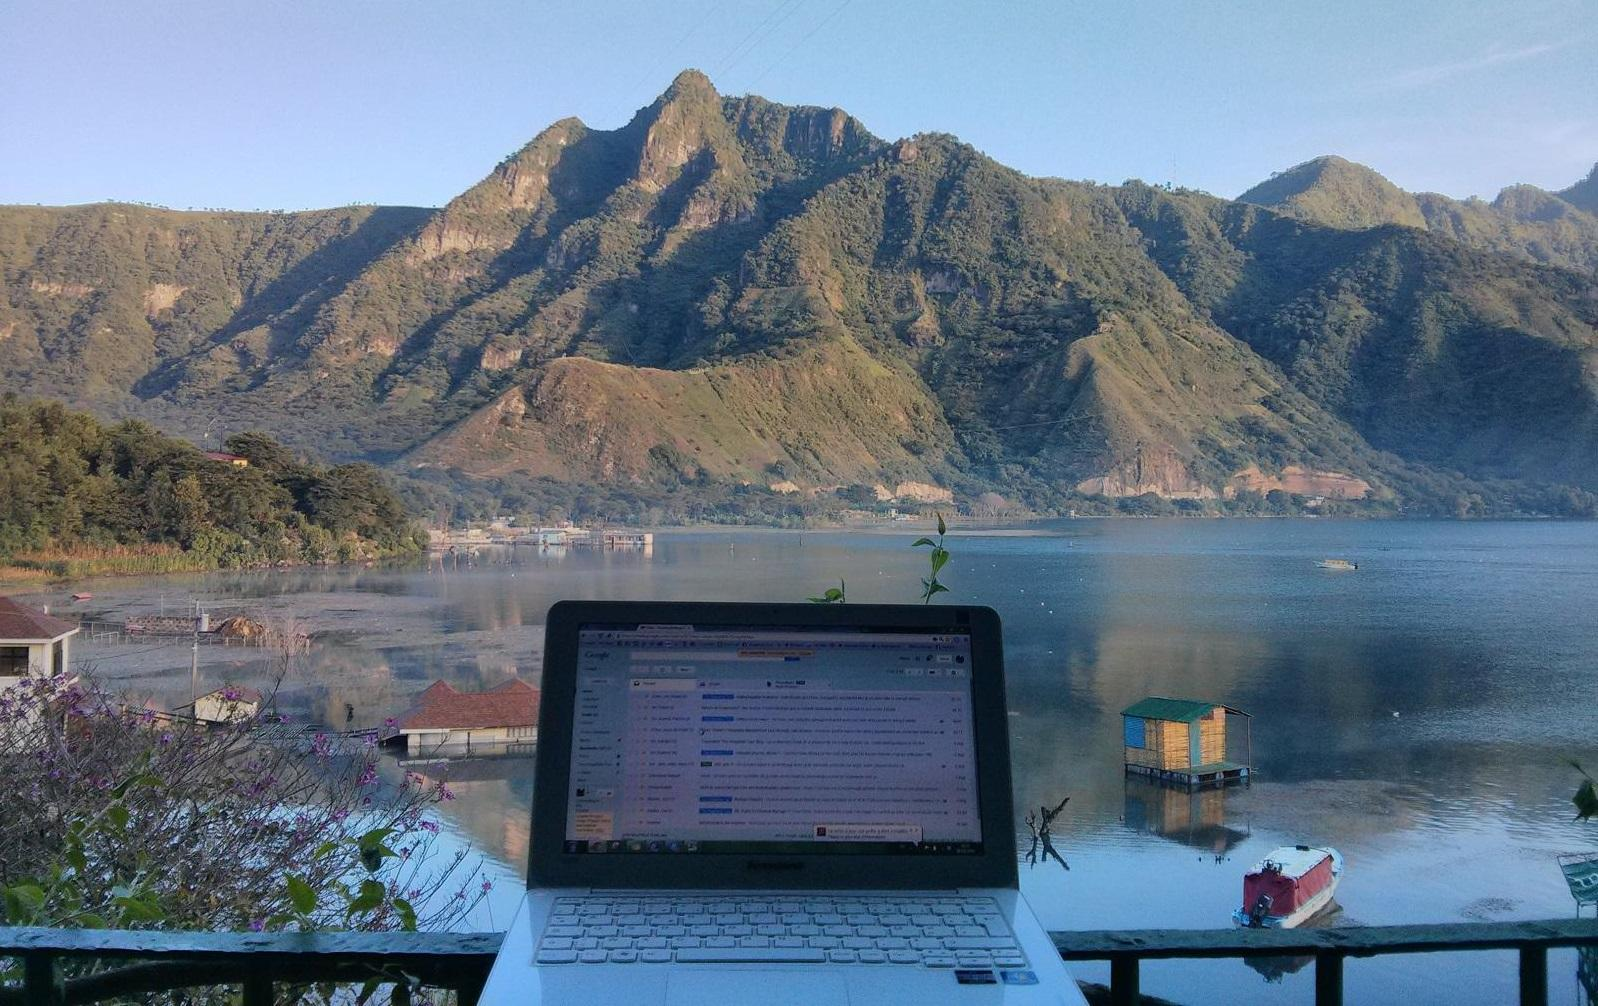 Florie working from Guatemala, Lago Atitlan